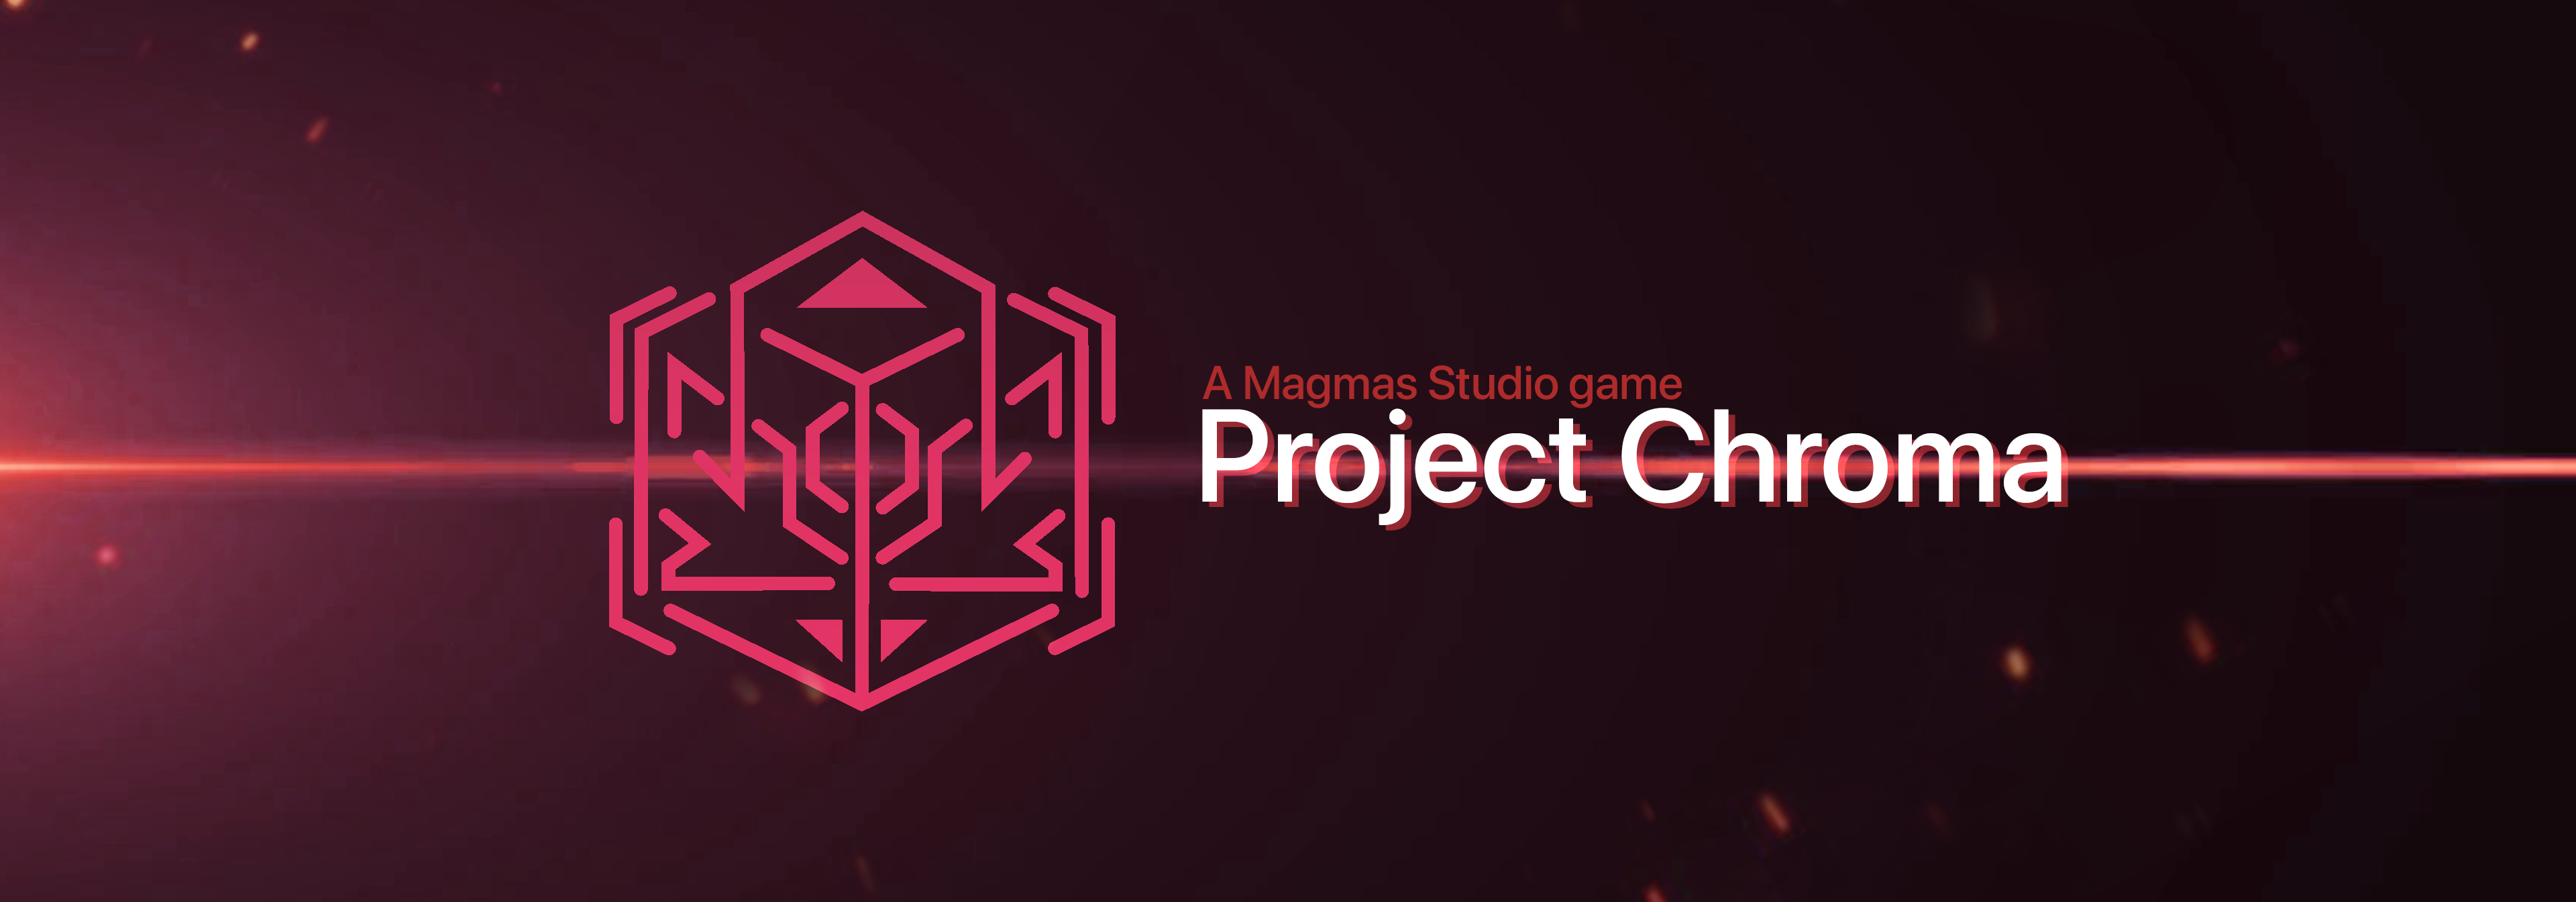 Project Chroma